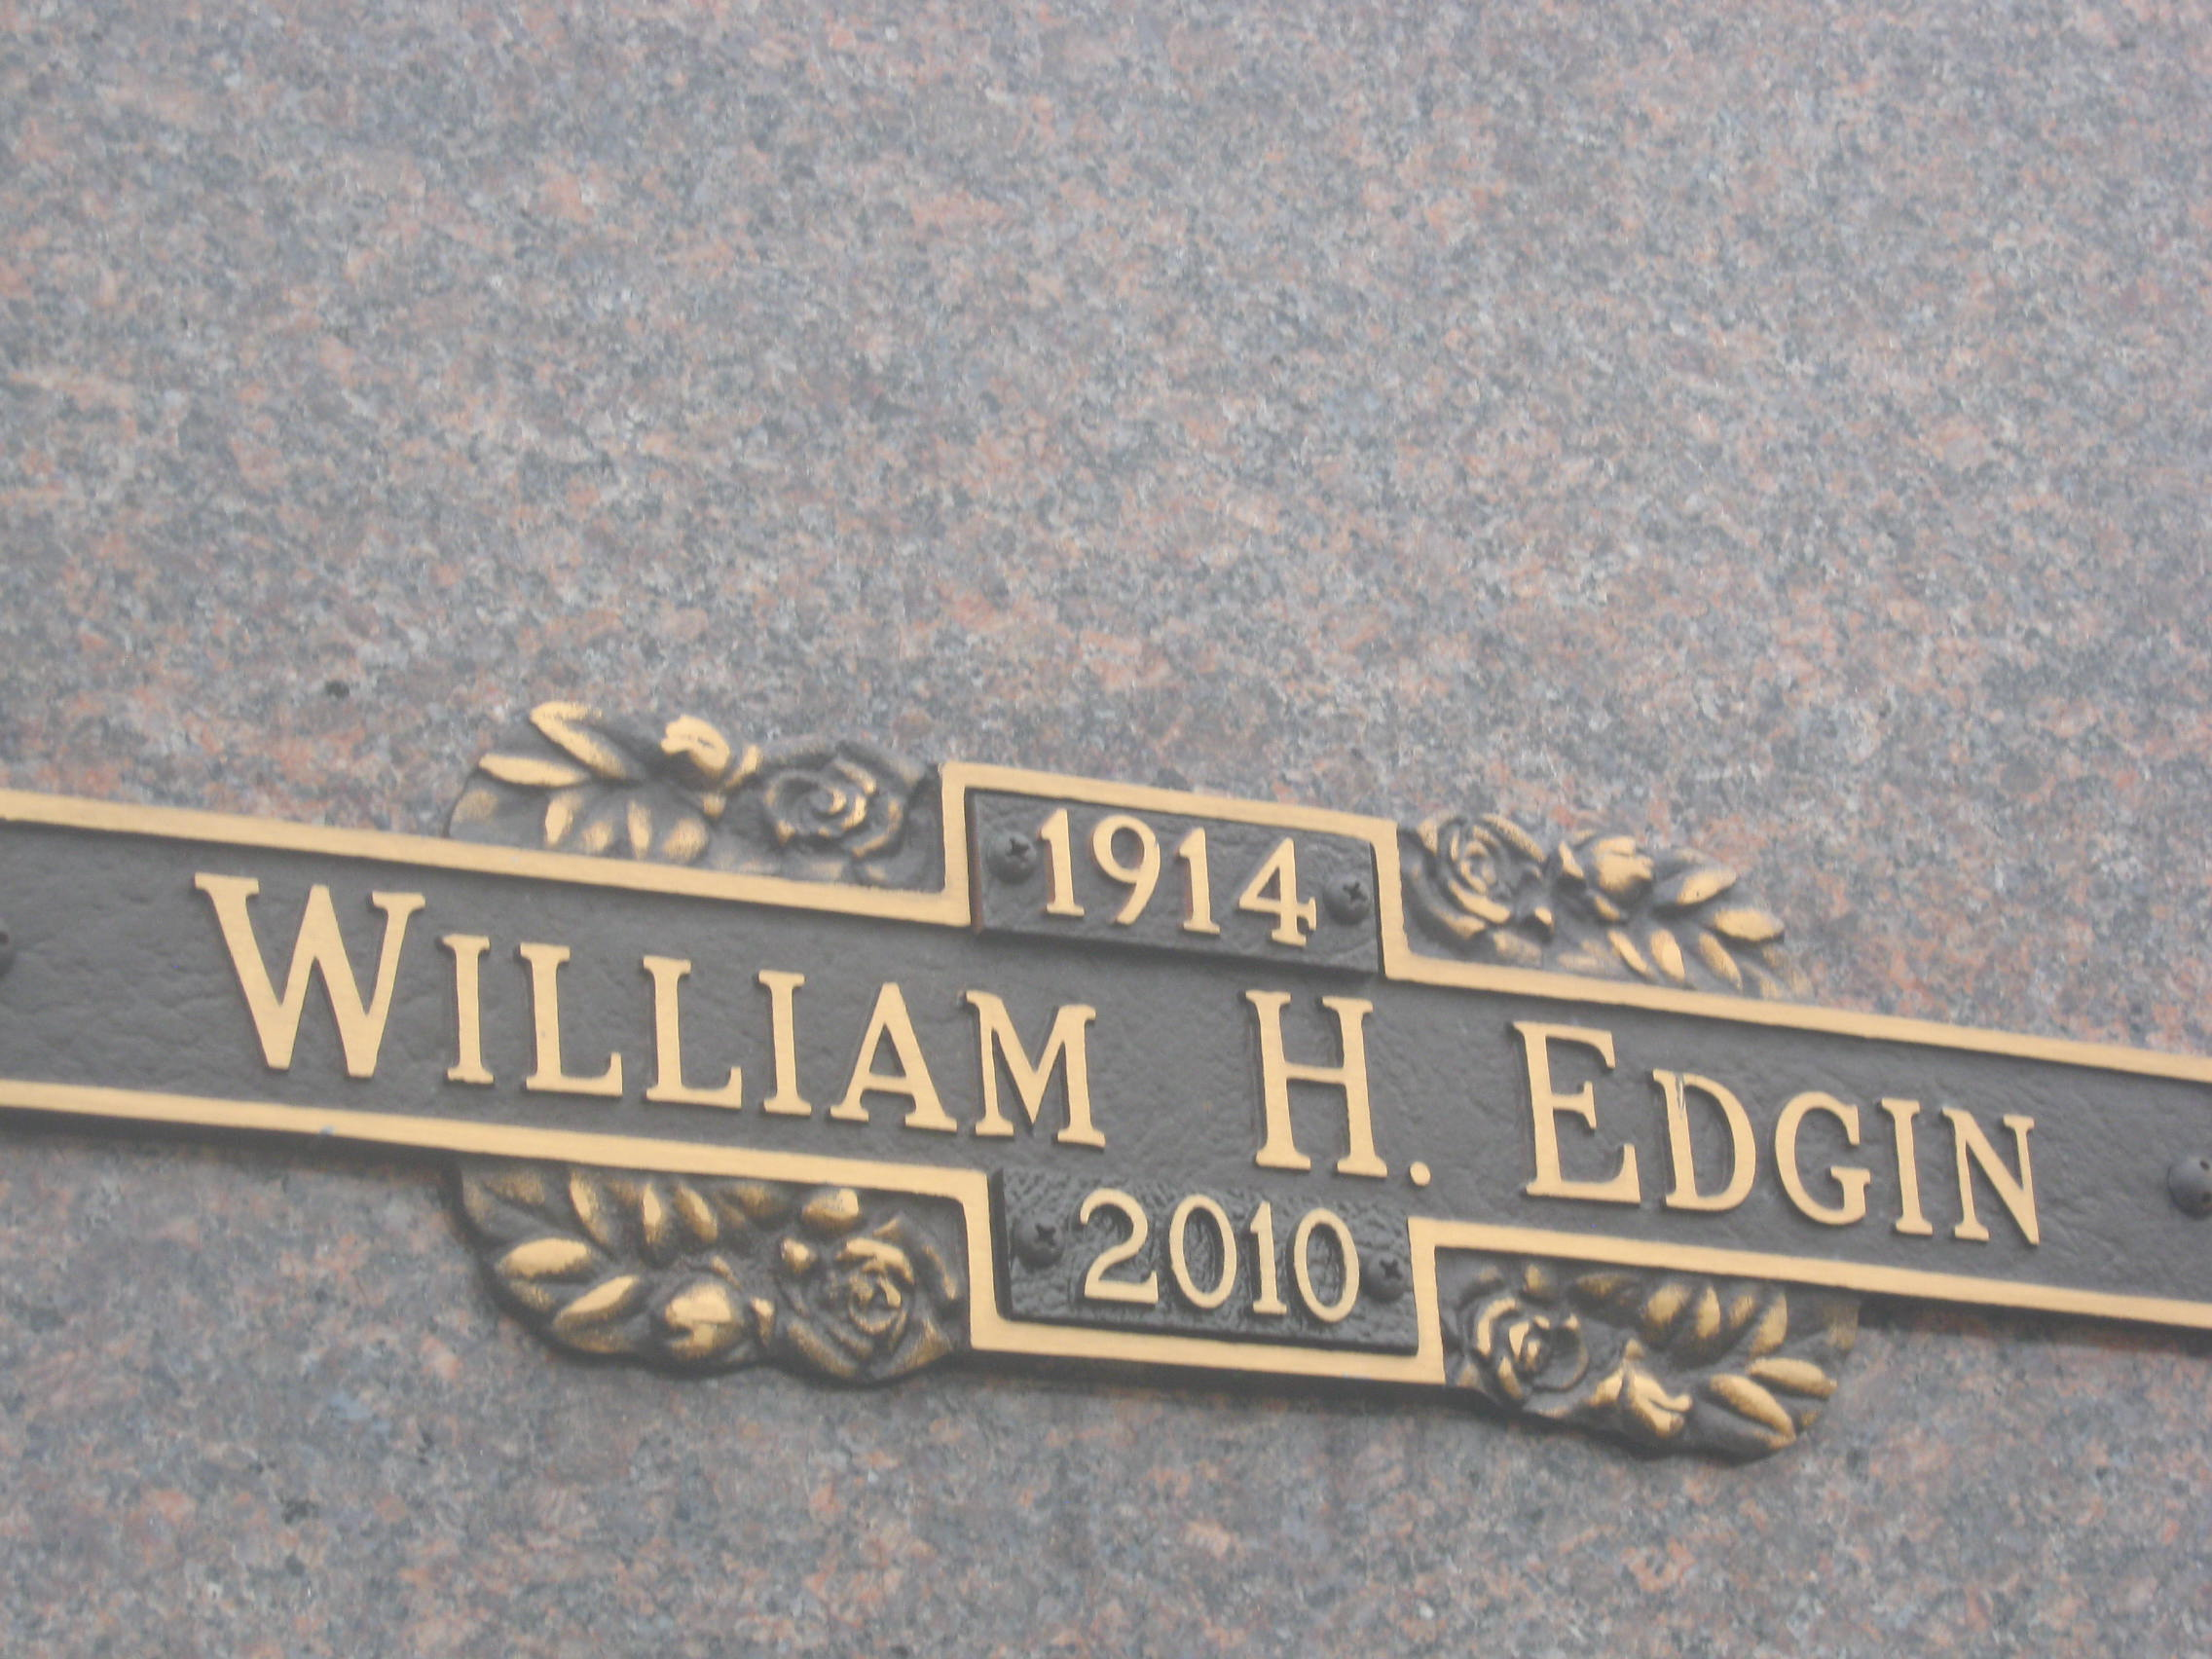 William Henry Bill Edgin